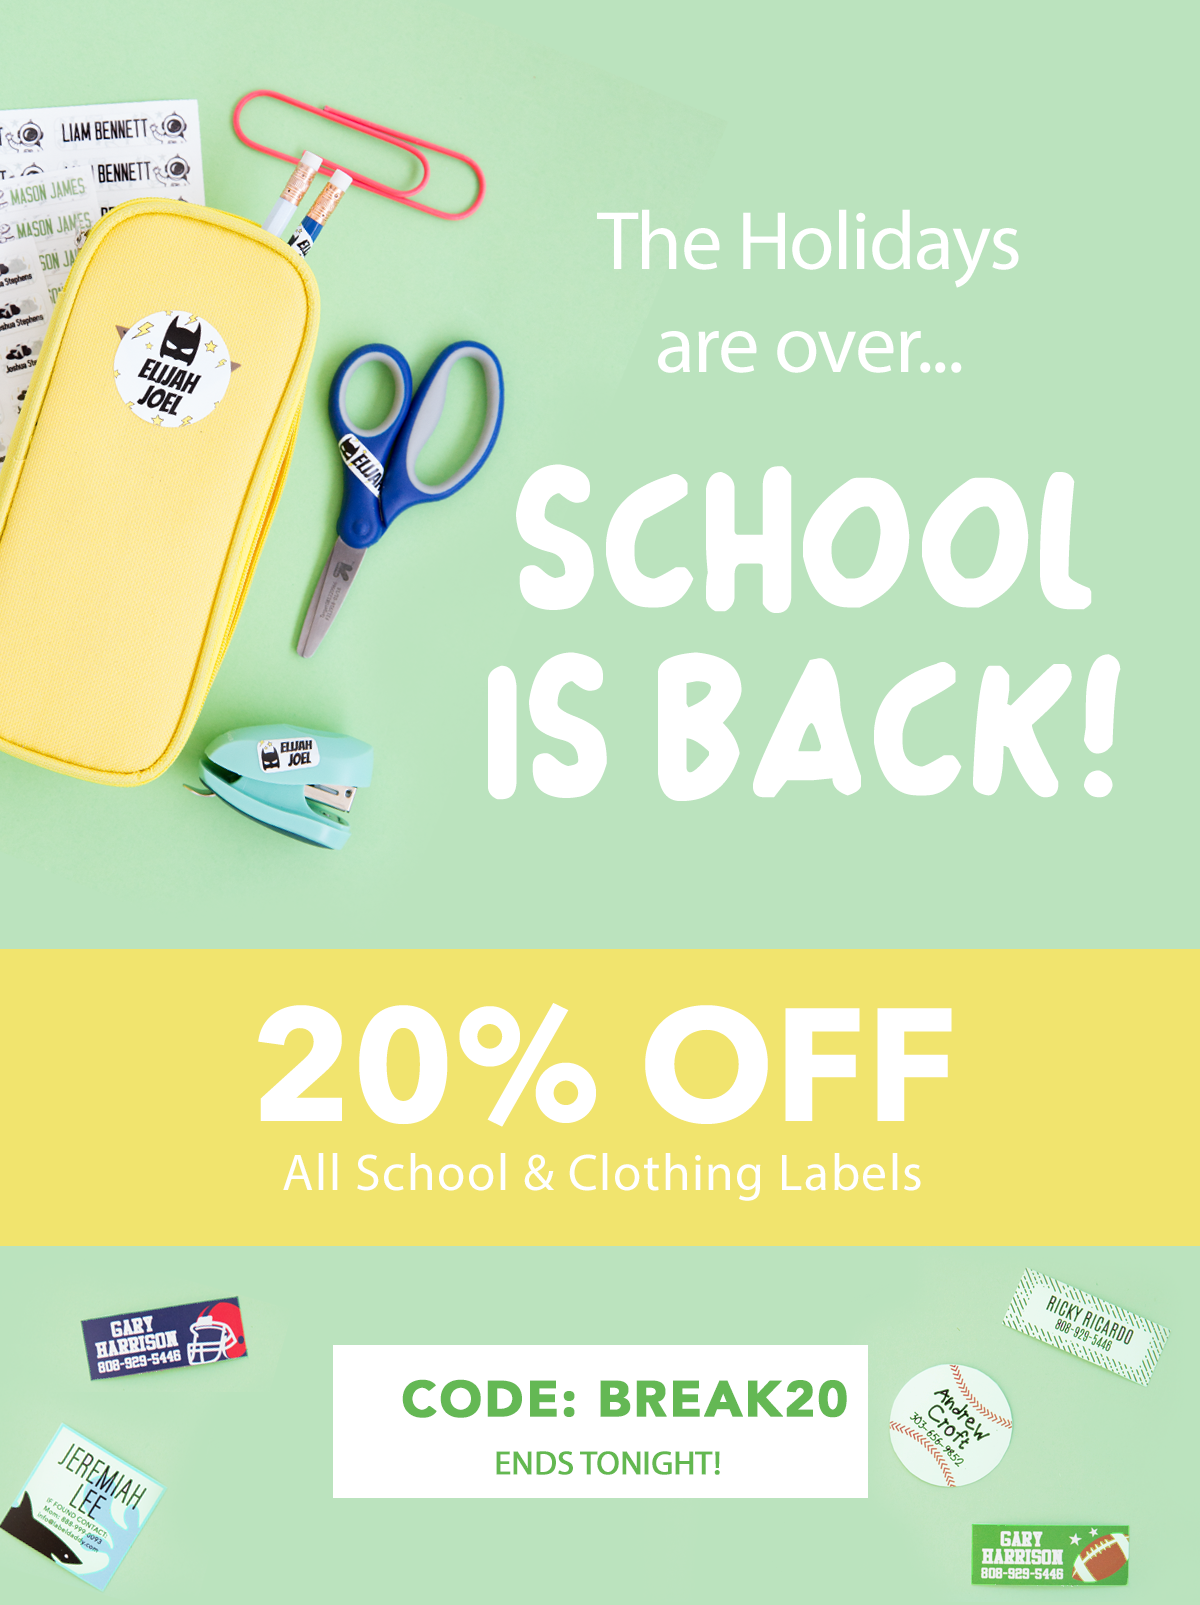 School is Back! 20% Off All School and Clothing Labels. Code: BREAK20. Ends Tonight!